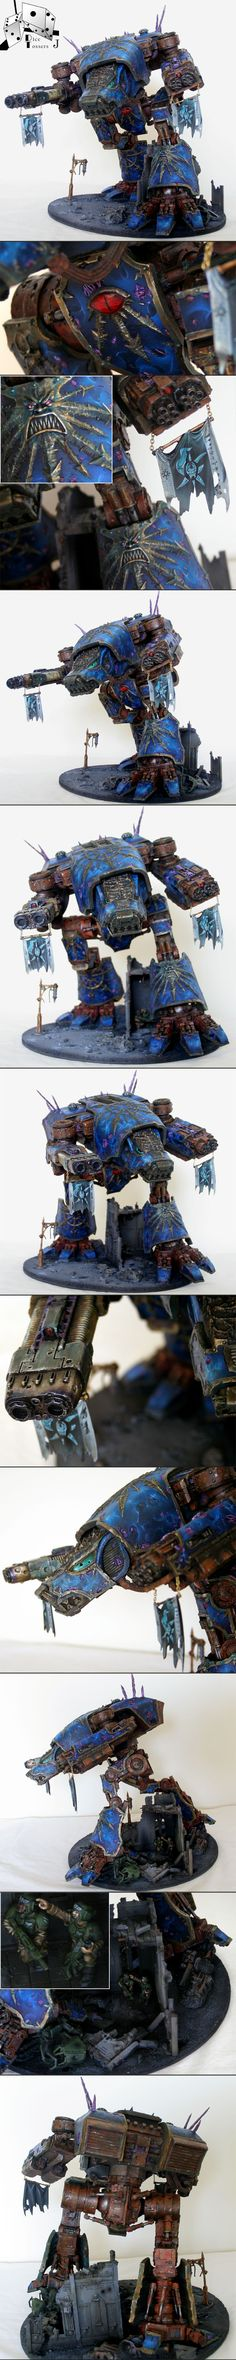 Js Feral Chaos Warhound Titan - Suns of Damnation Tzeentch